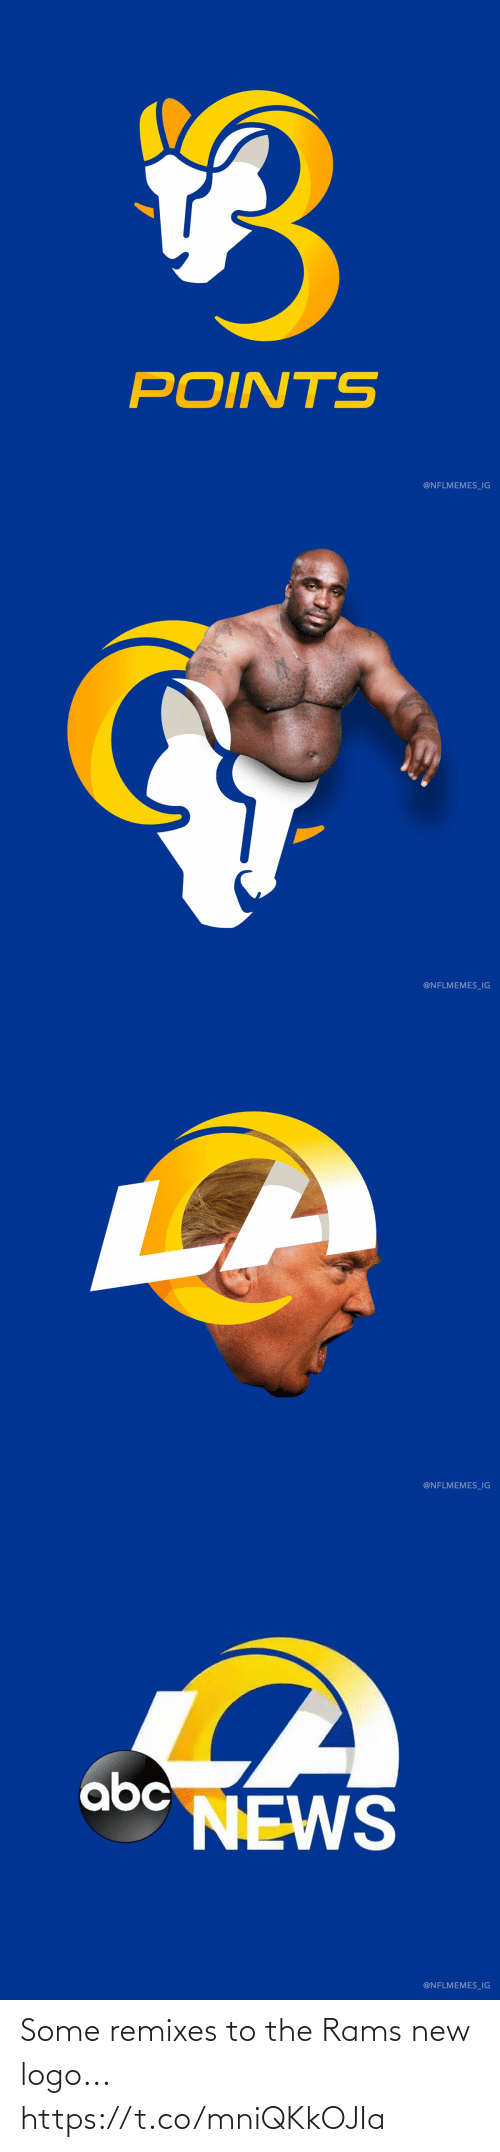 logo: Some remixes to the Rams new logo... https://t.co/mniQKkOJIa